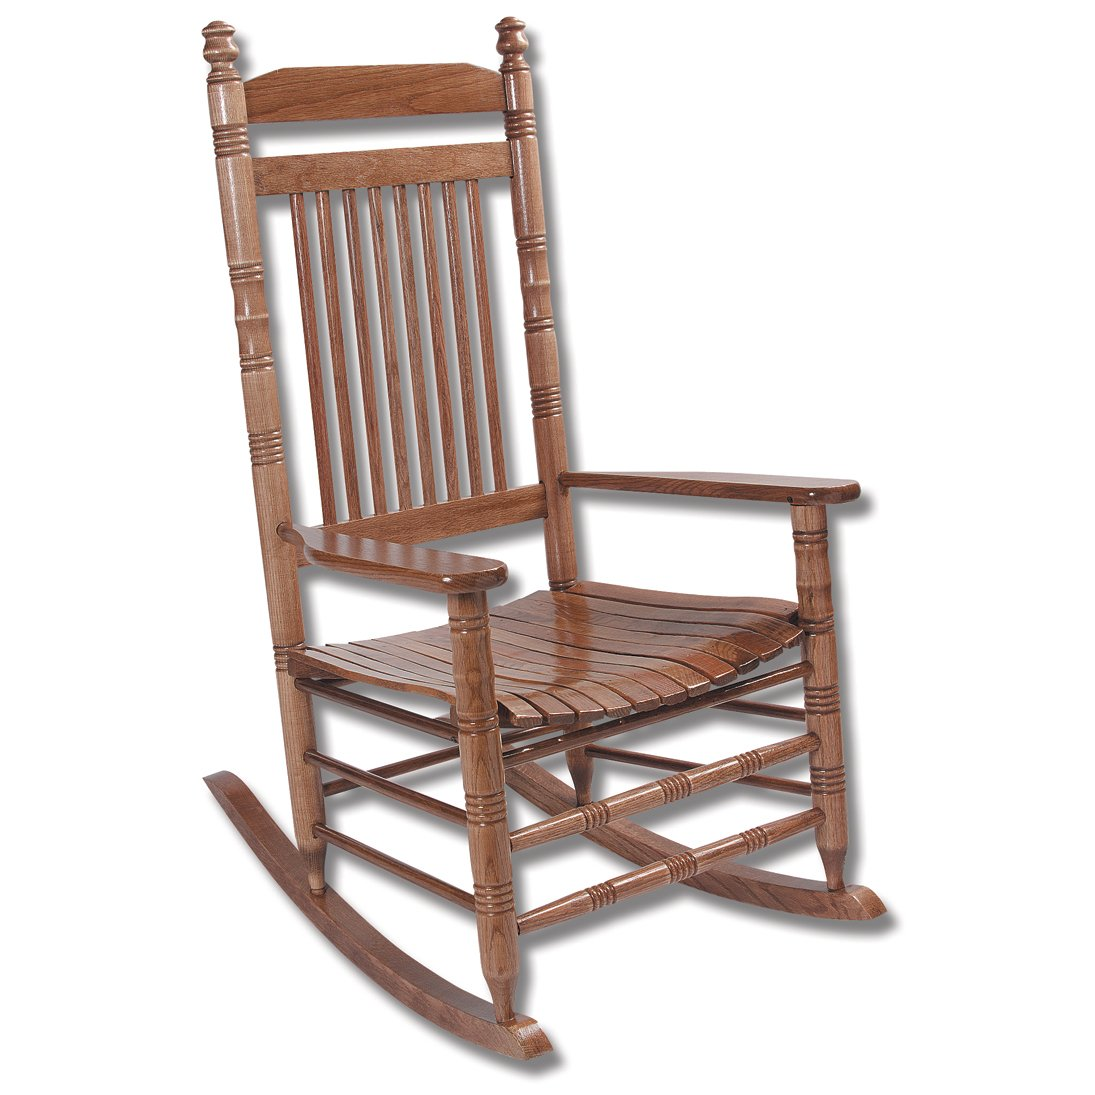 Hardwood Slat Rocking Chair - Fully Assembled